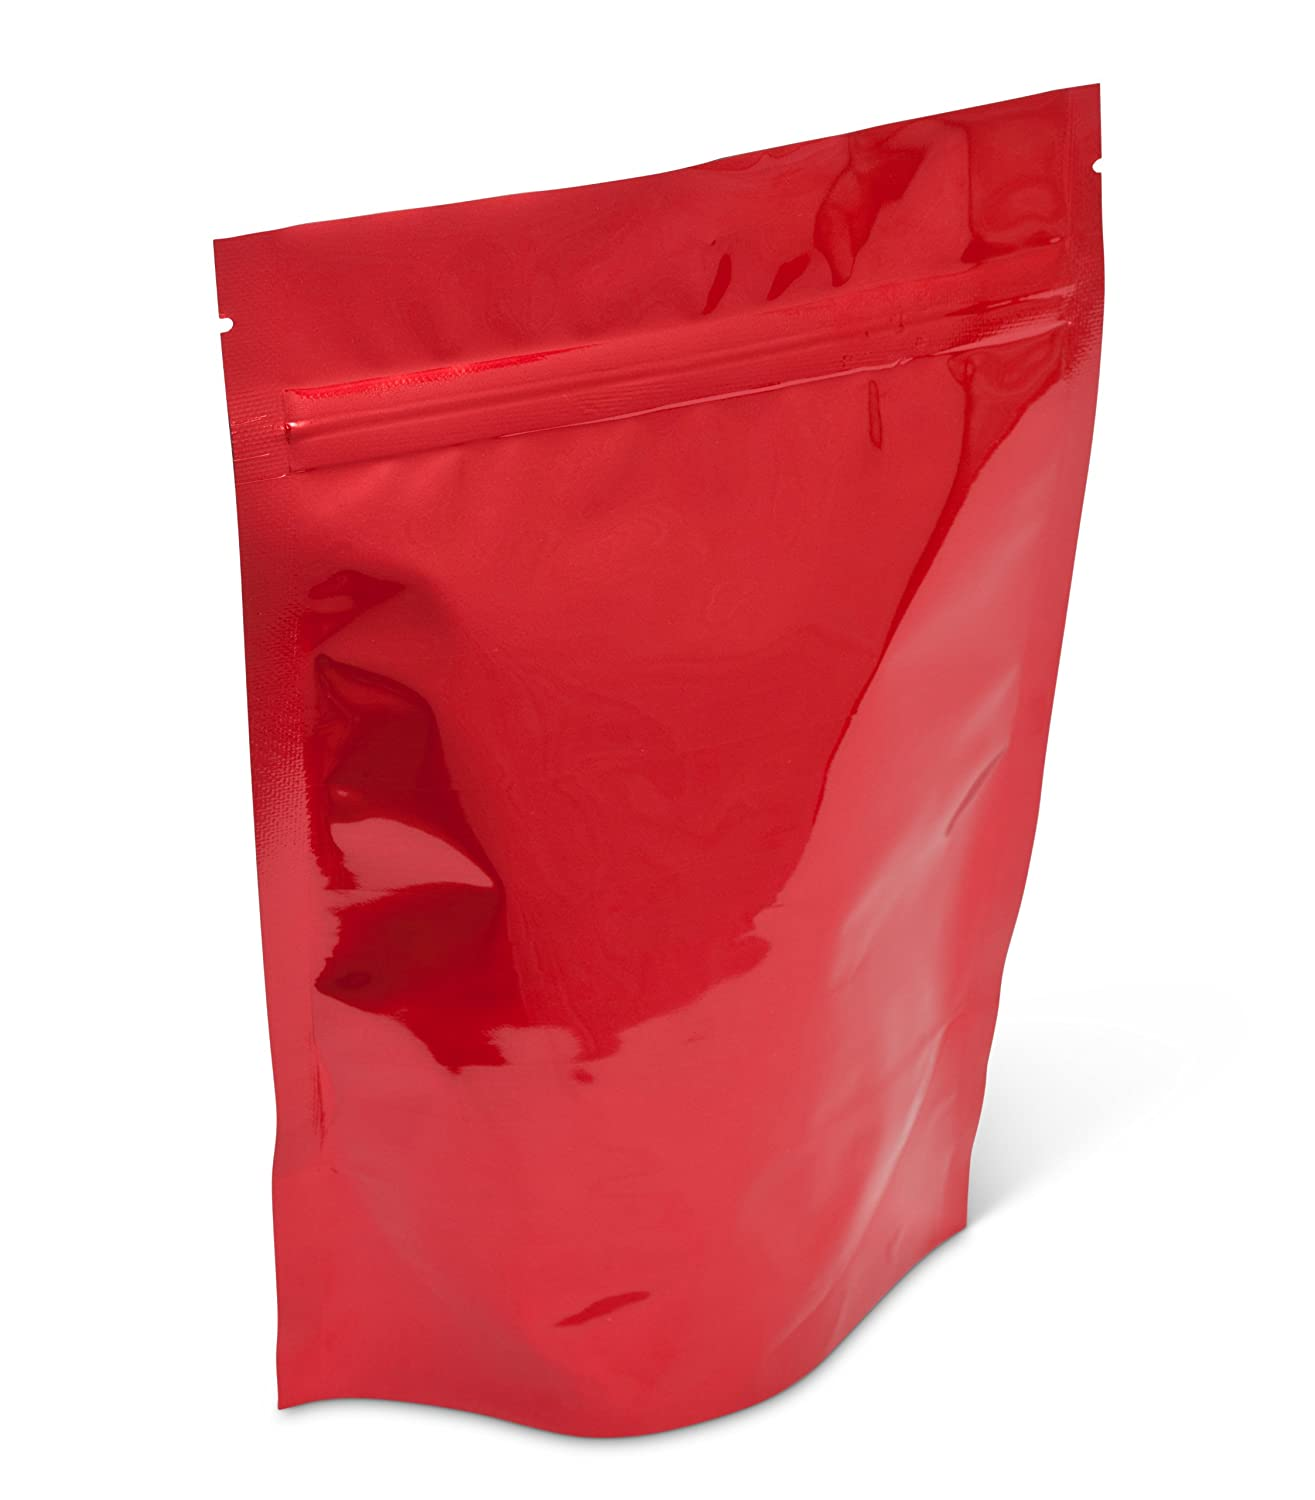 Pacific Bag 400-311BRZ Stand-Up Pouch 8 Red with Zip Limited price 55% OFF sale Bright oz